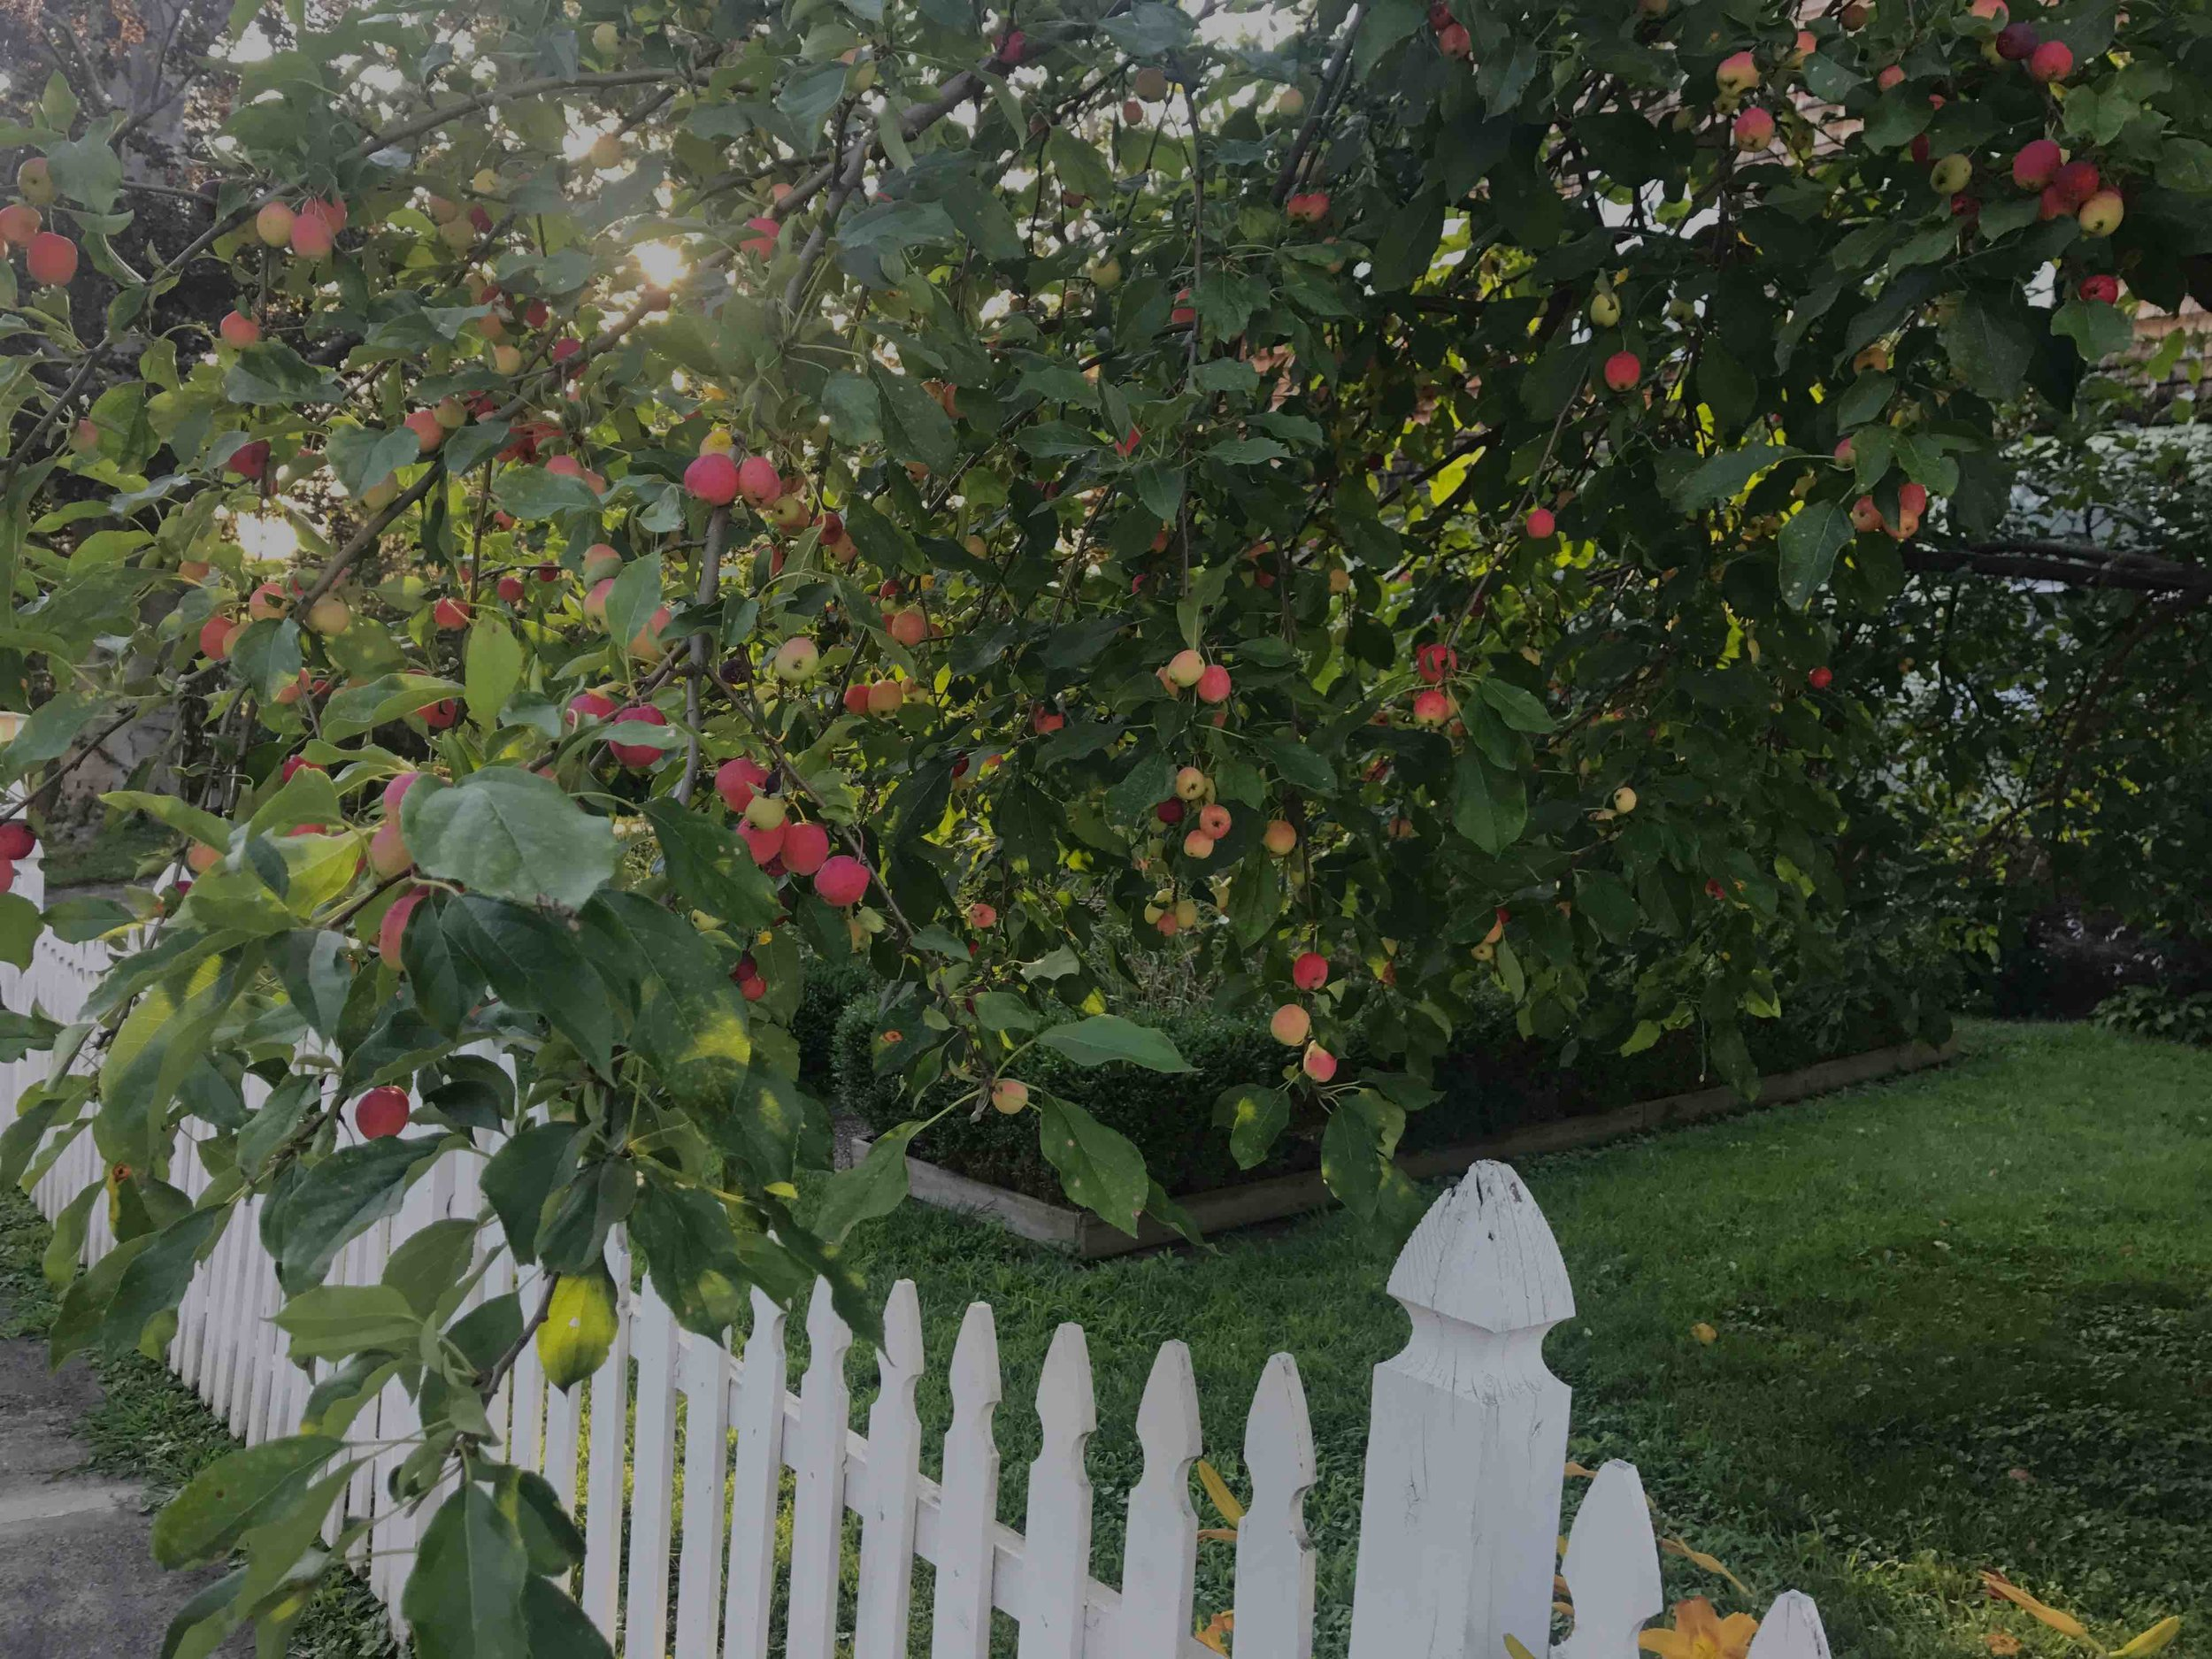 Enjoy The Fruits & Blossoms In Our Carefully Tended Gardens -